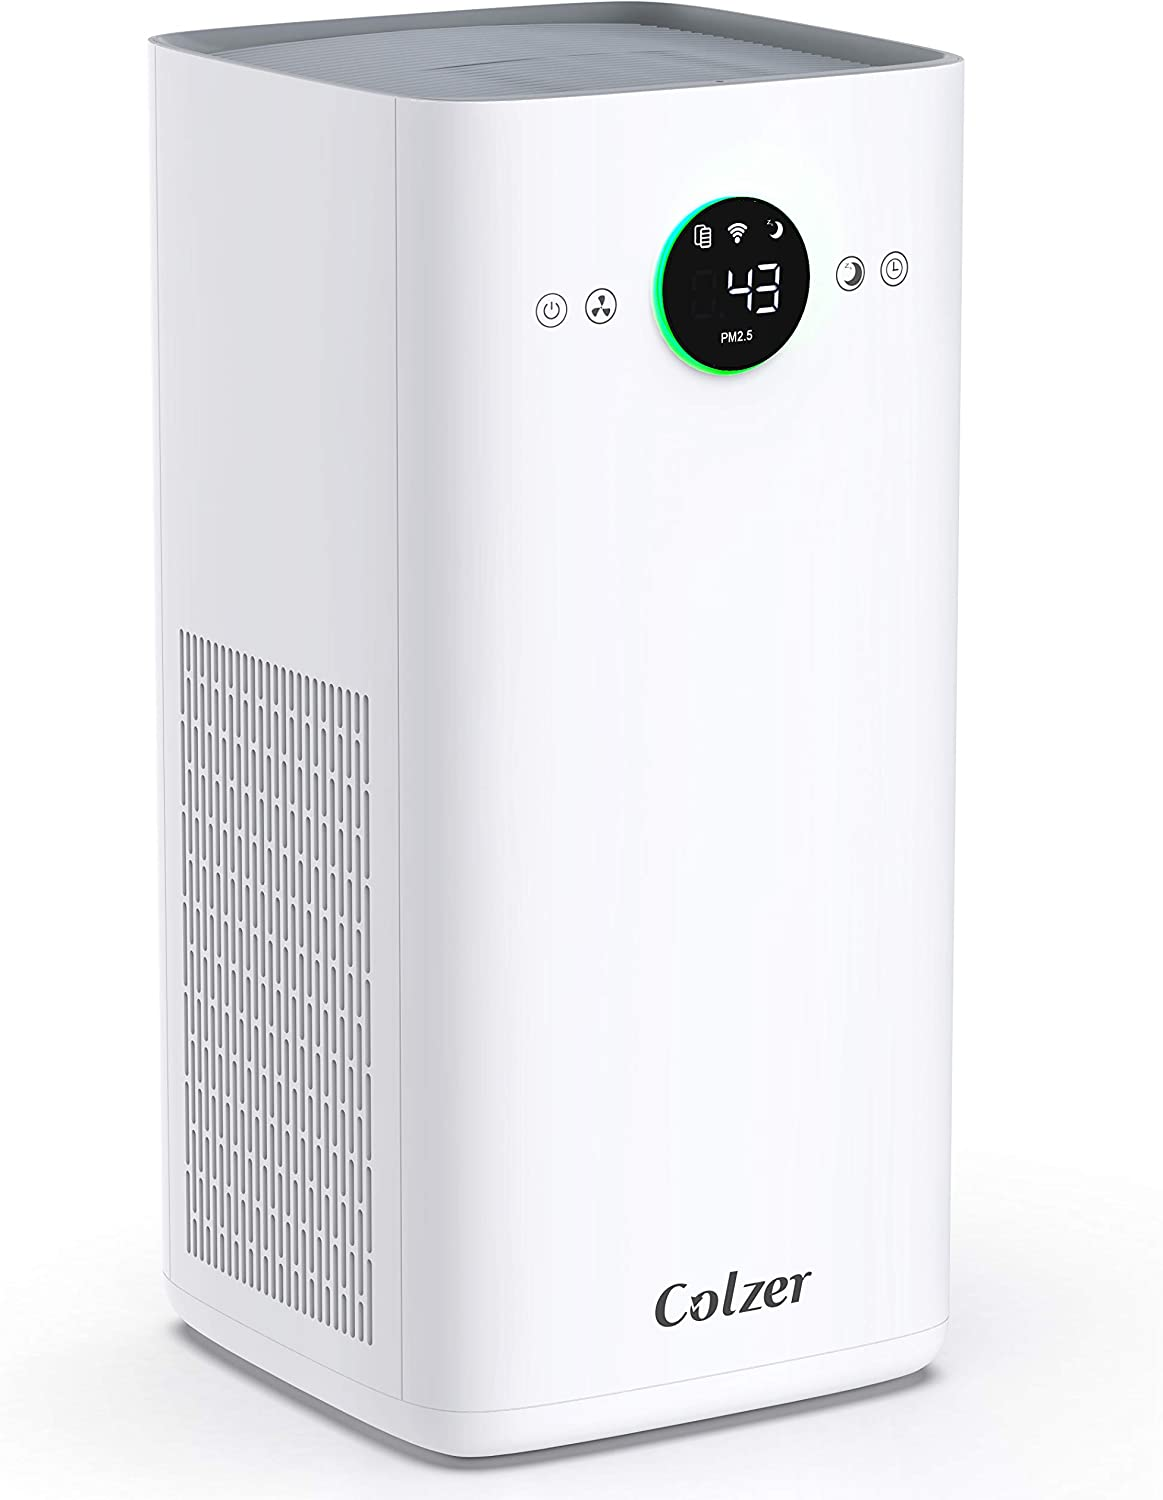 COLZER KJ580 Air Purifier with True HEPA Air Filter, Intelligent Wi-Fi App Control, 3-Stage Filtration, for Spaces Up to 1100 Sq Ft, Perfect for Bedroom/Home/Office with Filter: Home & Kitchen